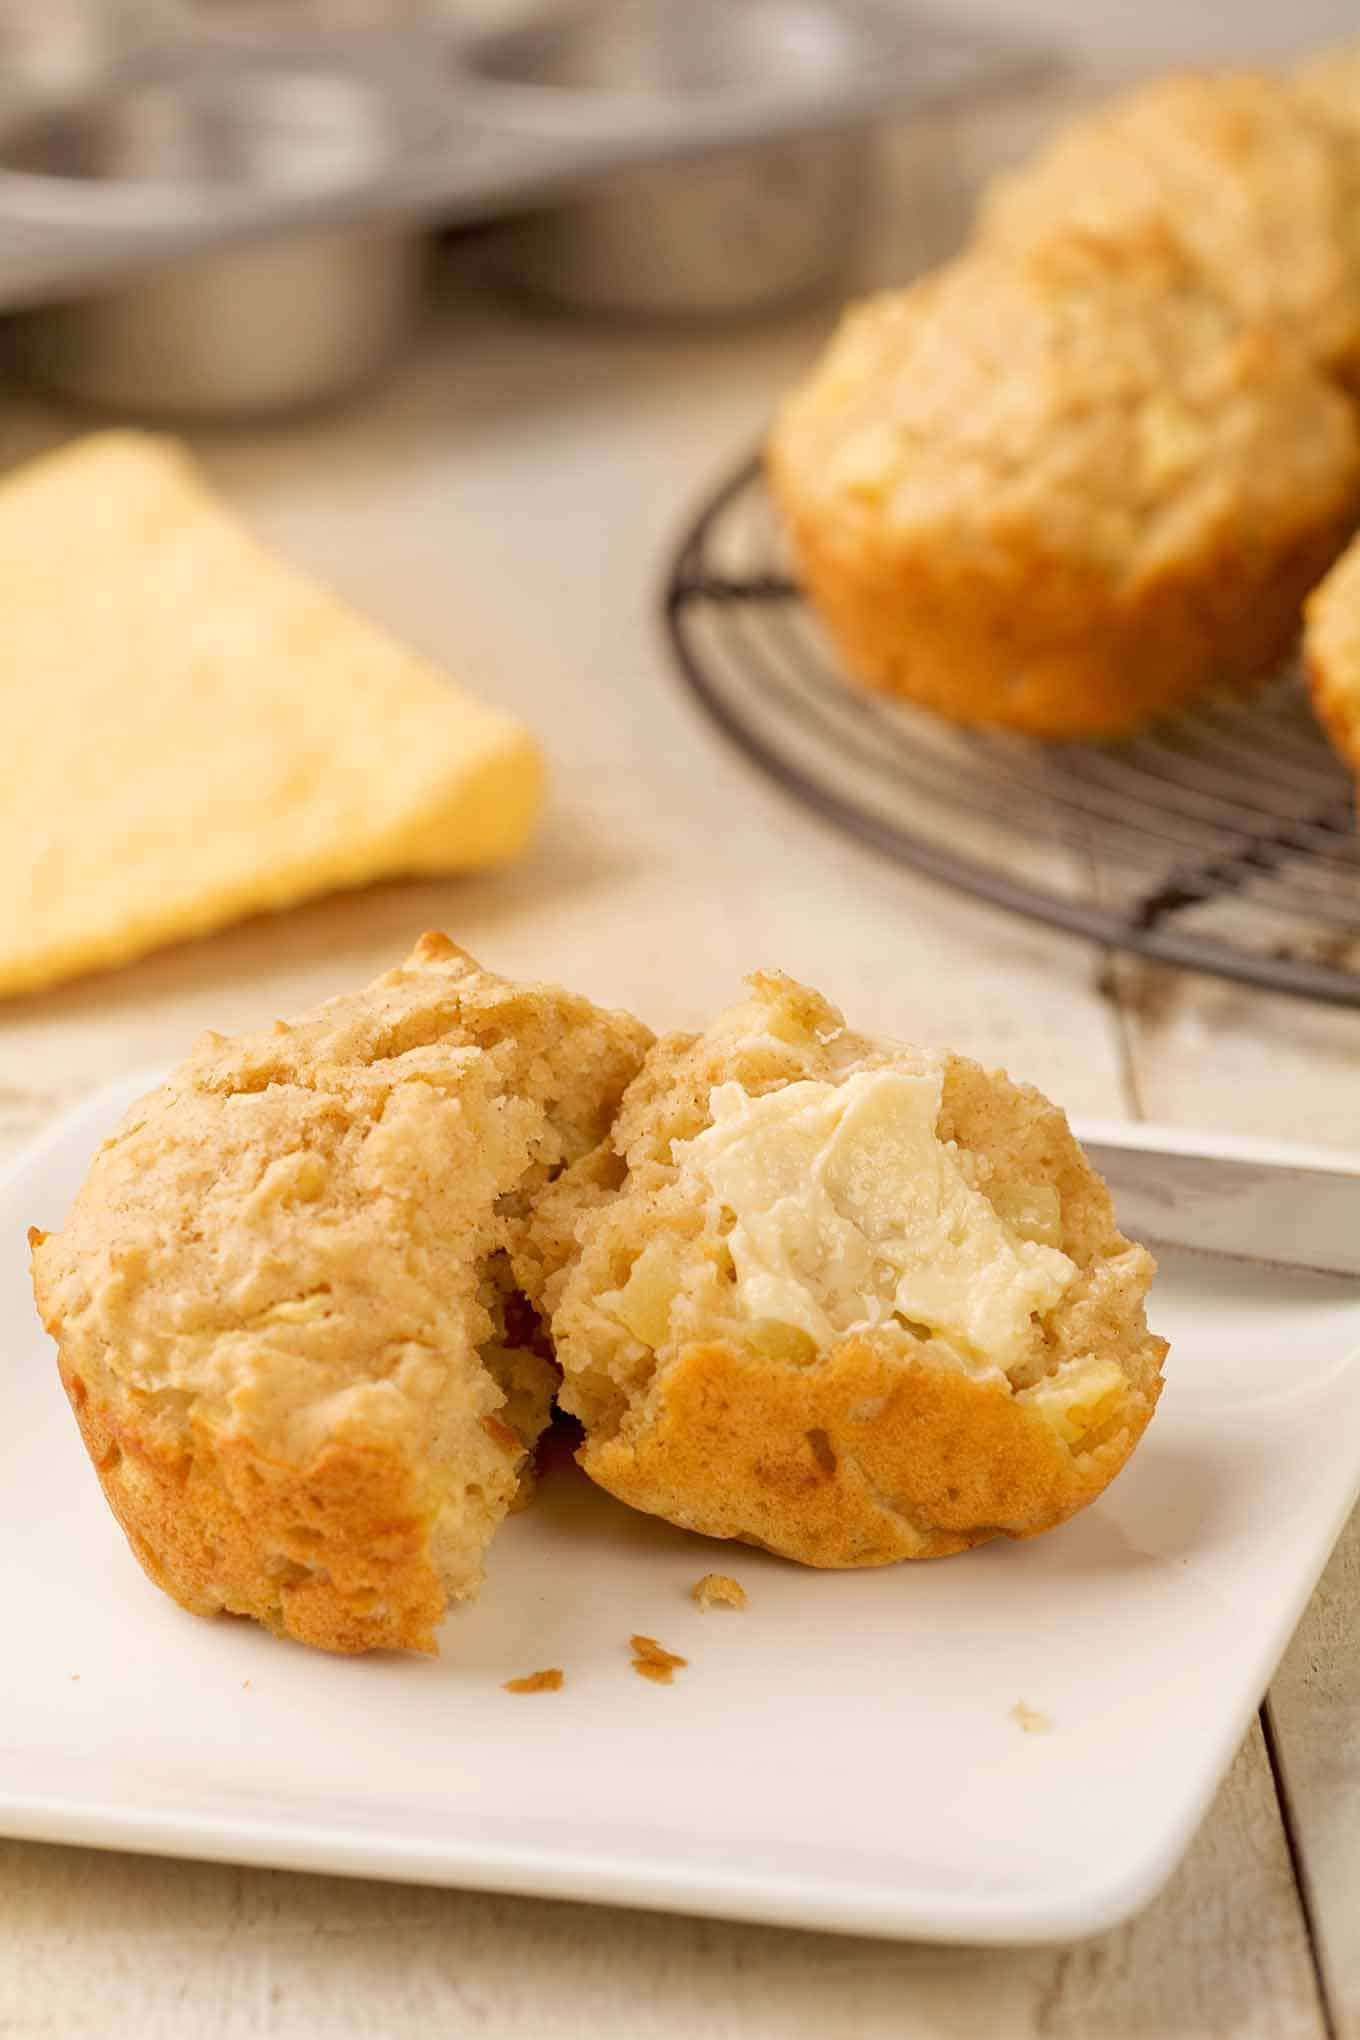 Apple oatmeal muffin on serving plate